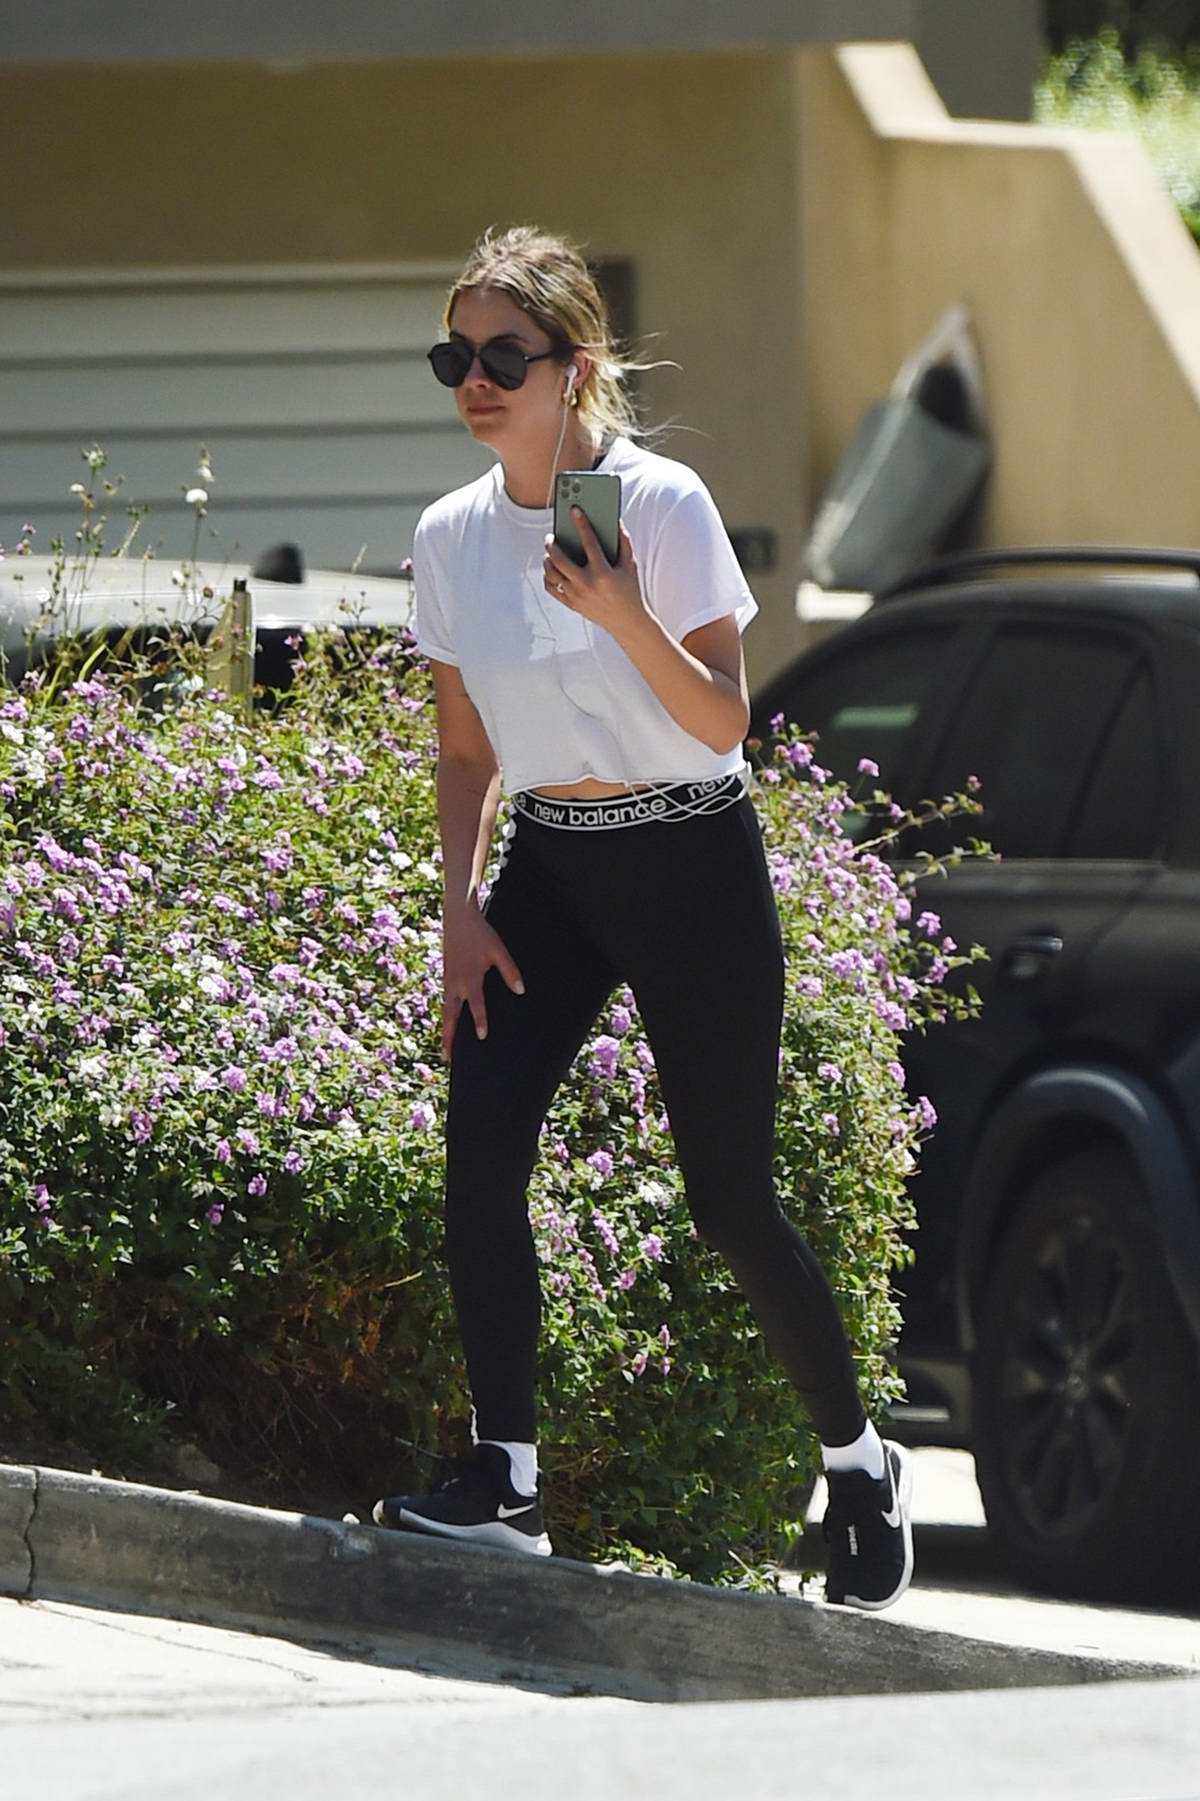 Ashley Benson chats on her phone while out for an afternoon hike in Los Angeles